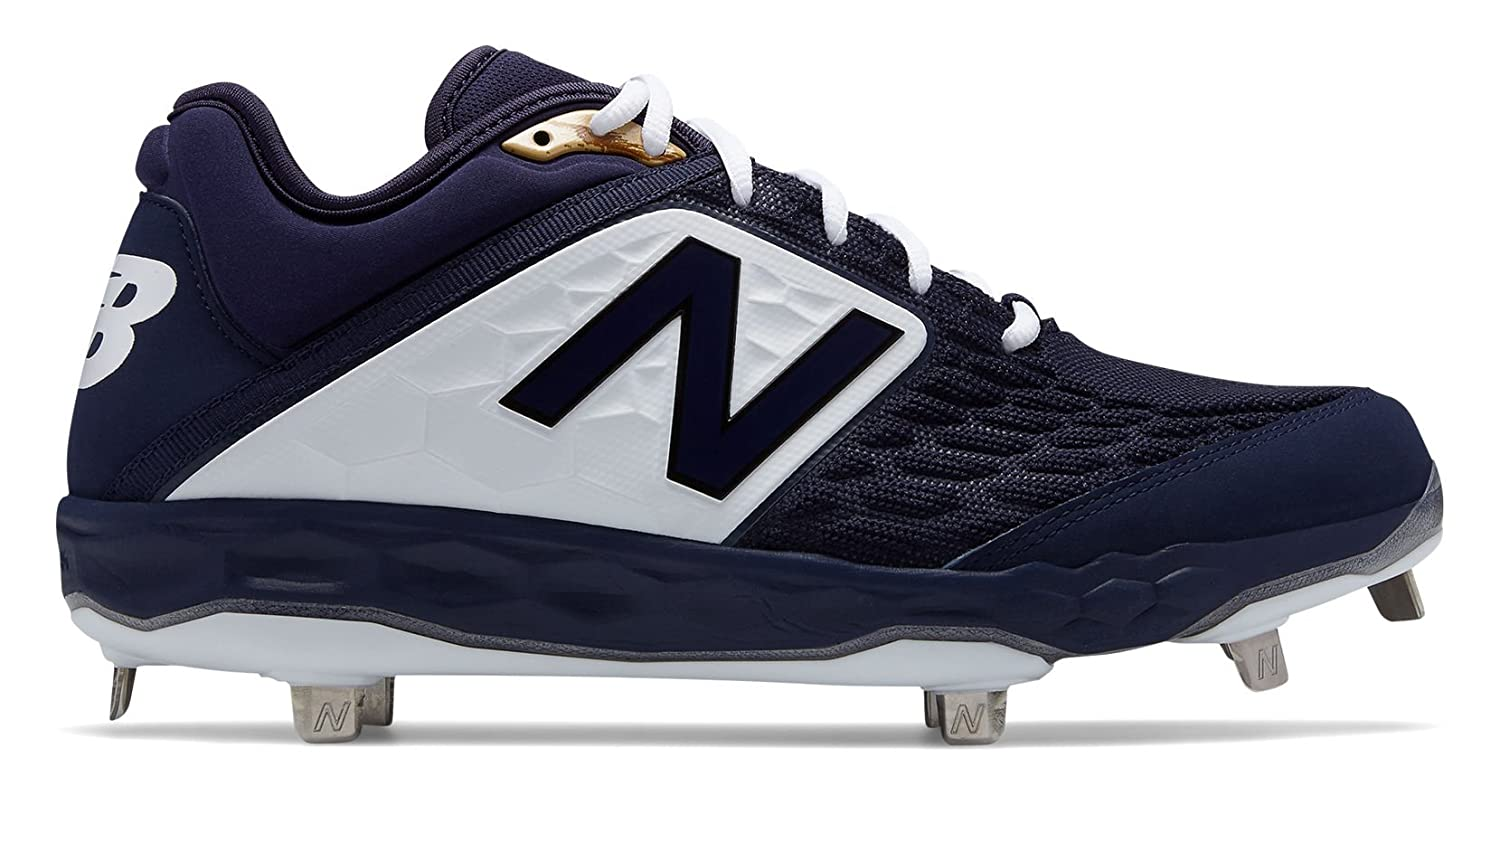 New Balance Men's 3000v4 Metal Baseball Shoe B075R6Z24Q 14 2E US|Navy